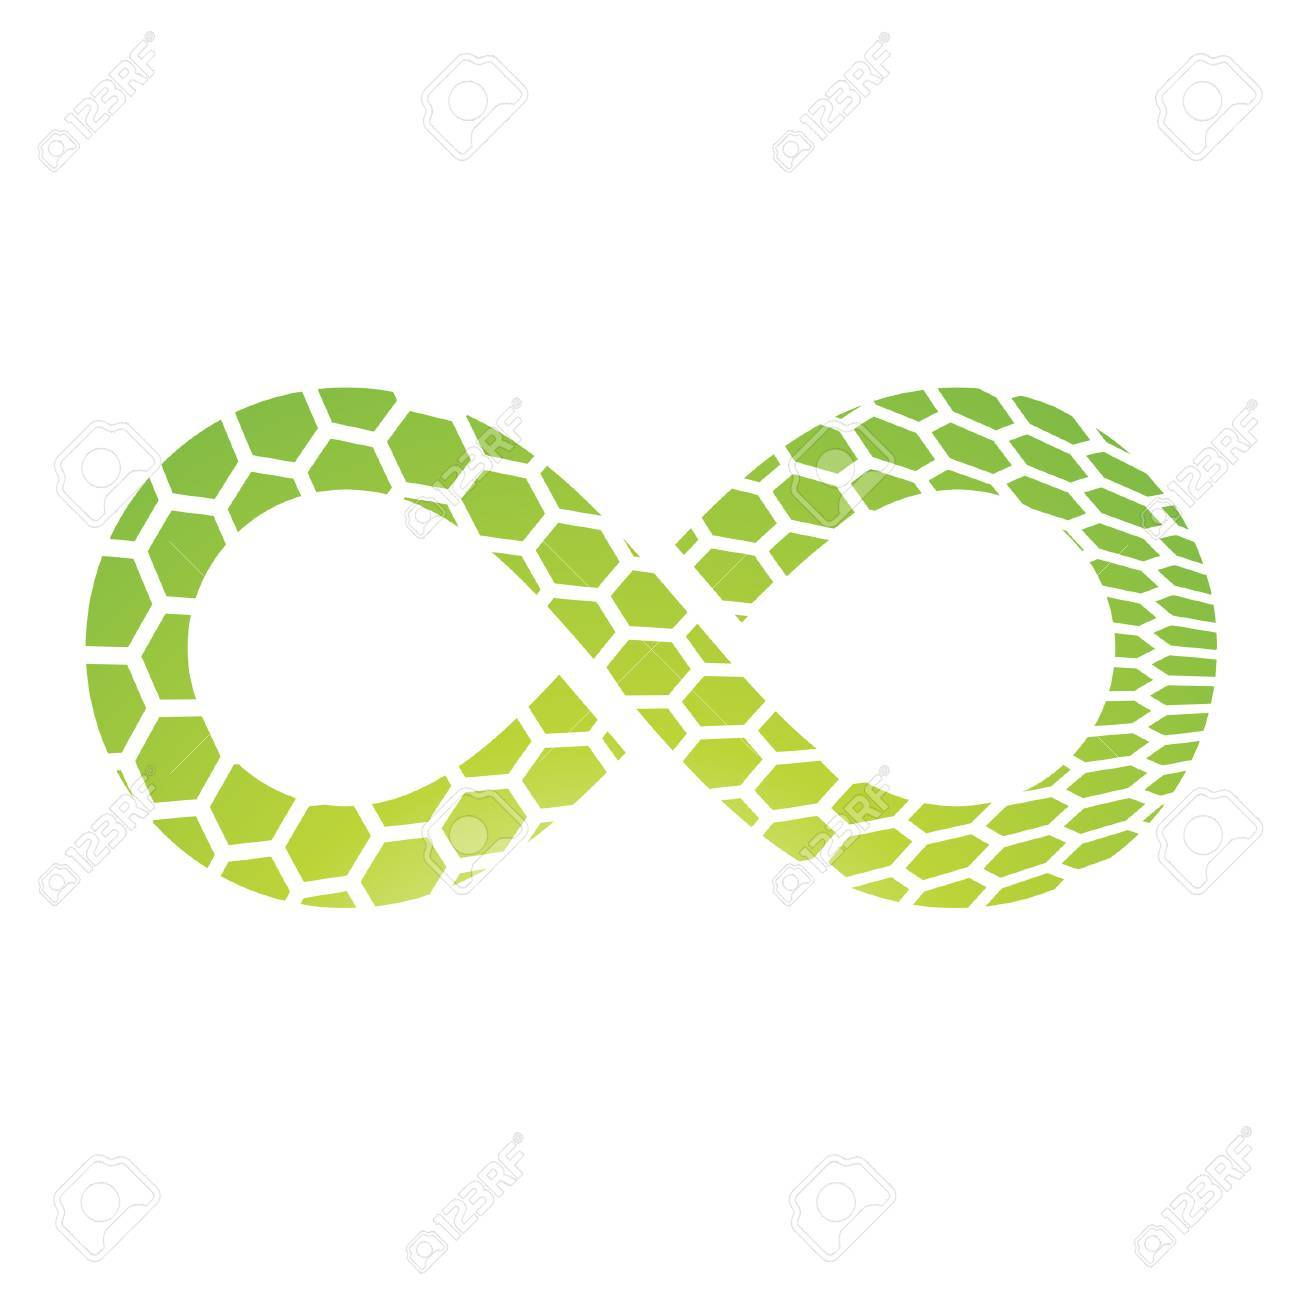 Illustration Of Infinity Symbol Design Isolated On A White